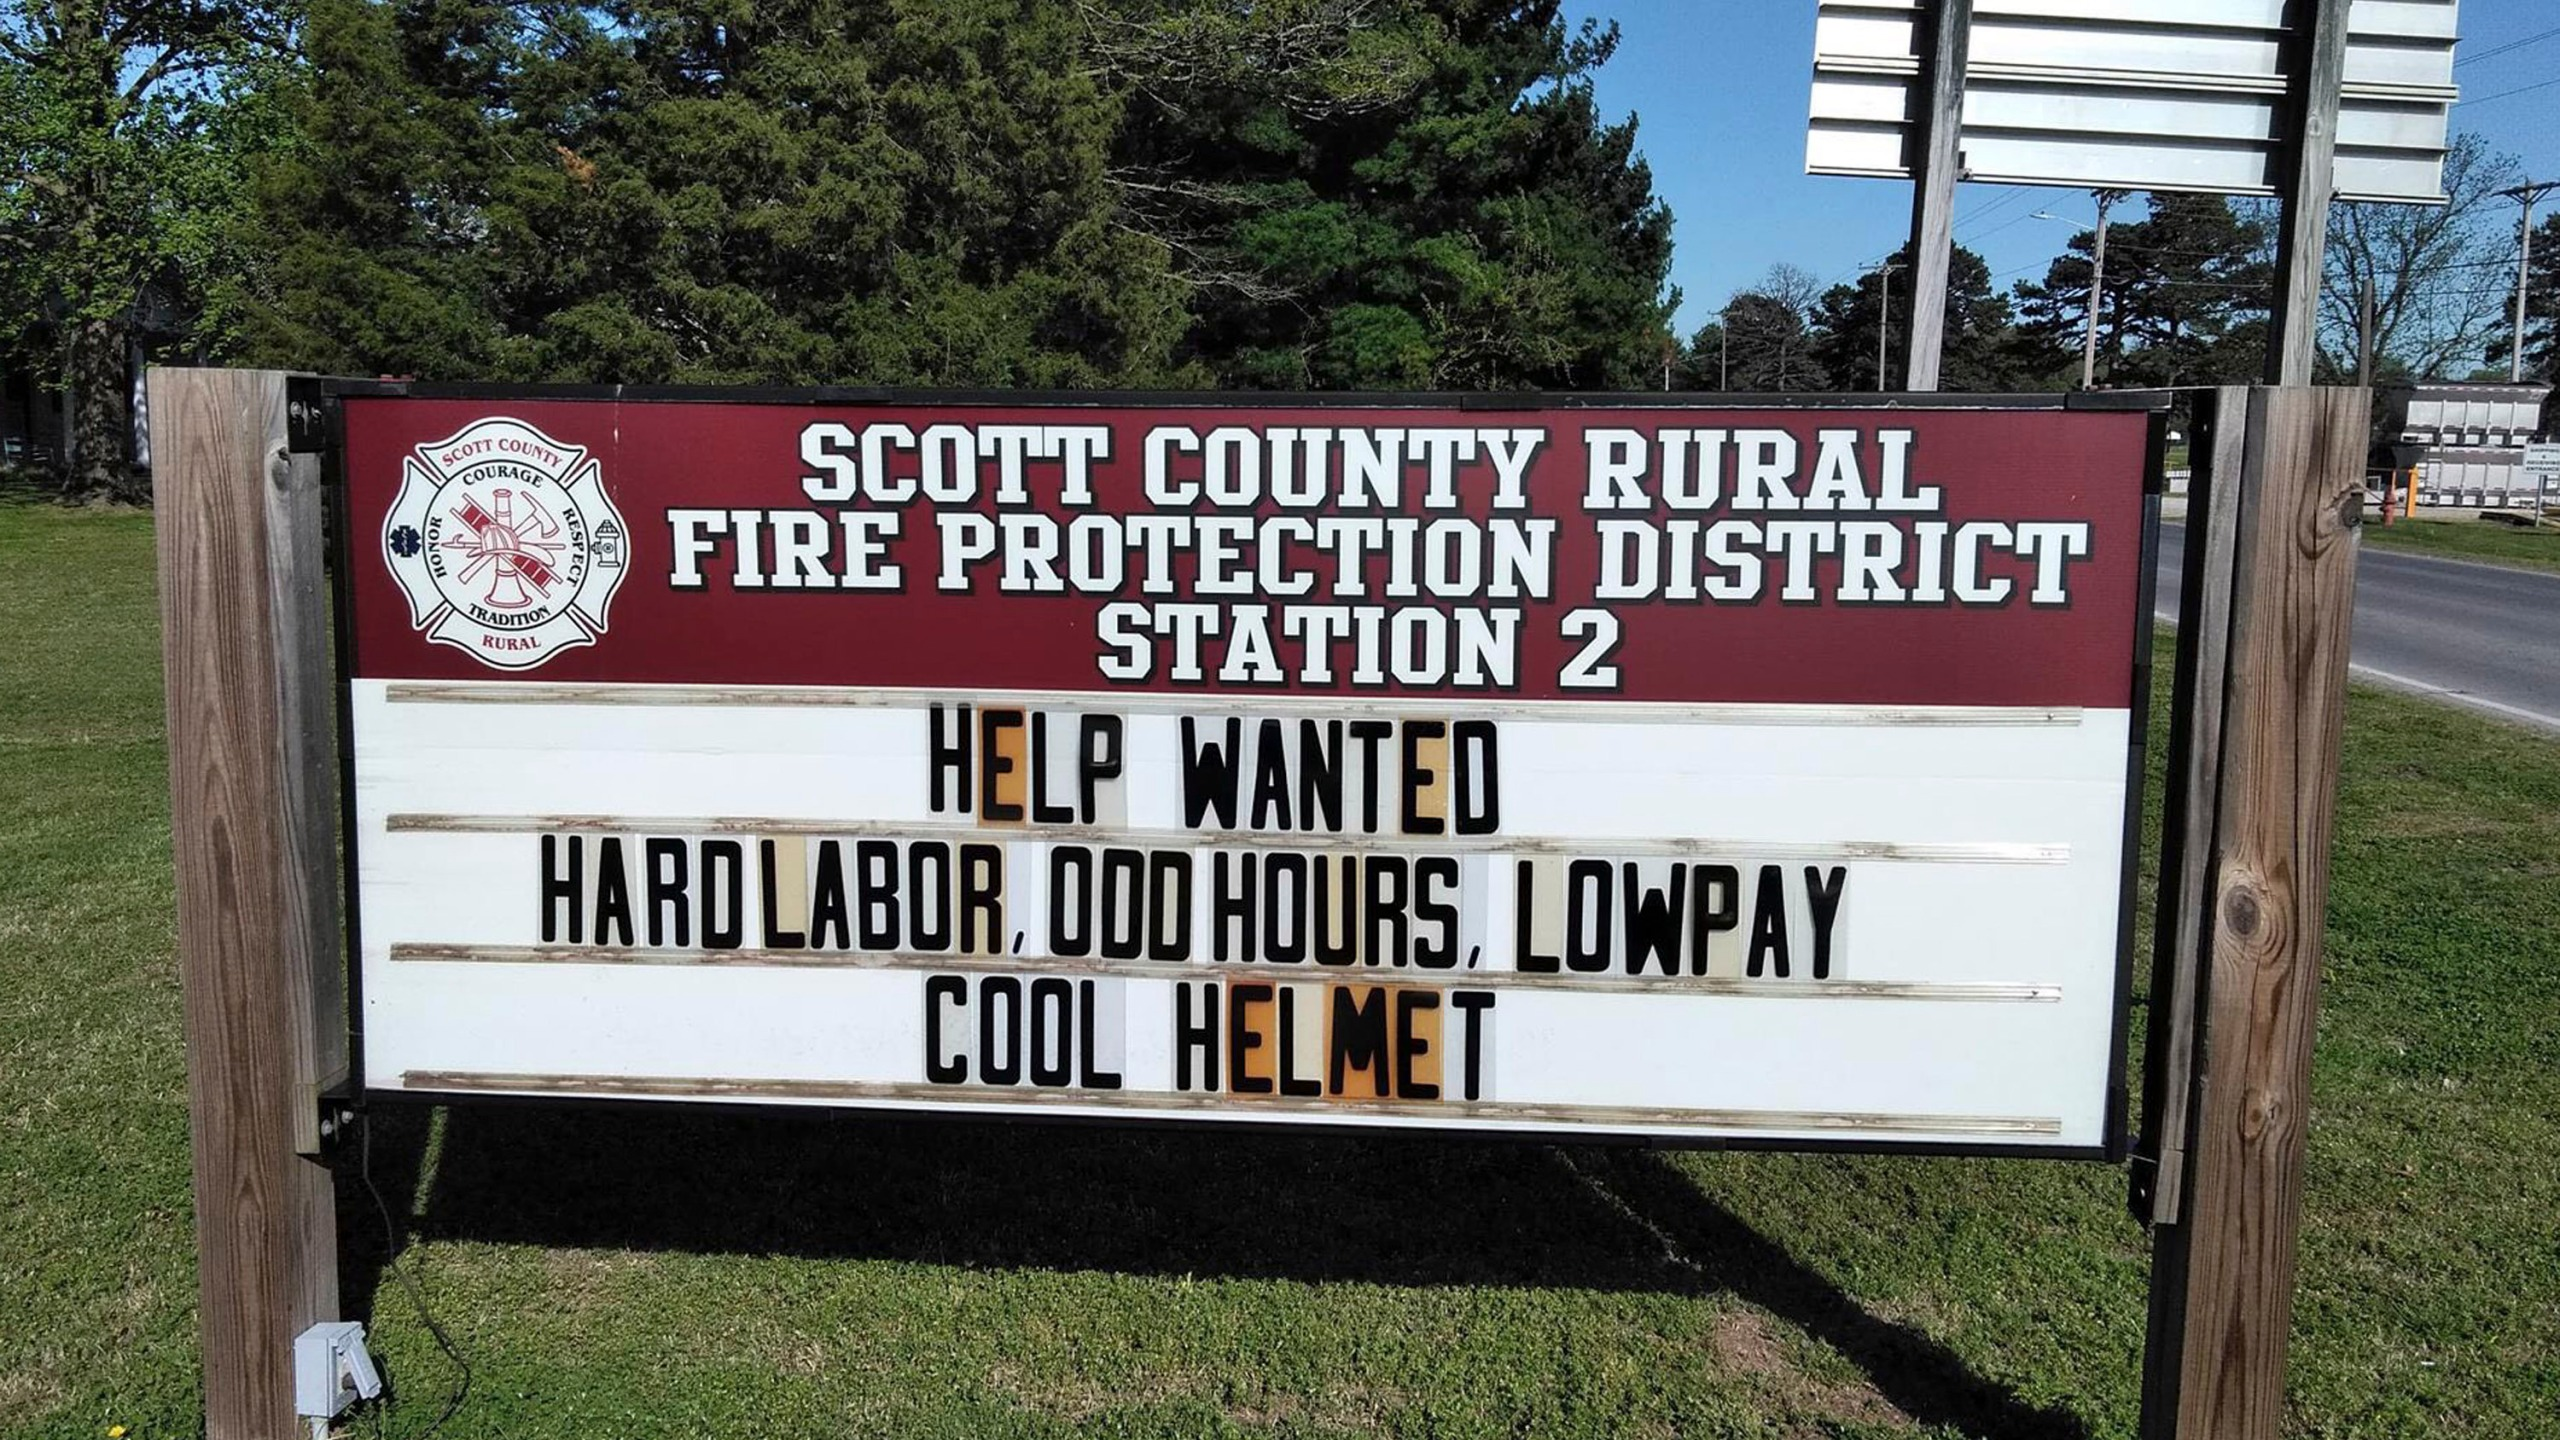 Humorous Firefighter Ad_1556142729997